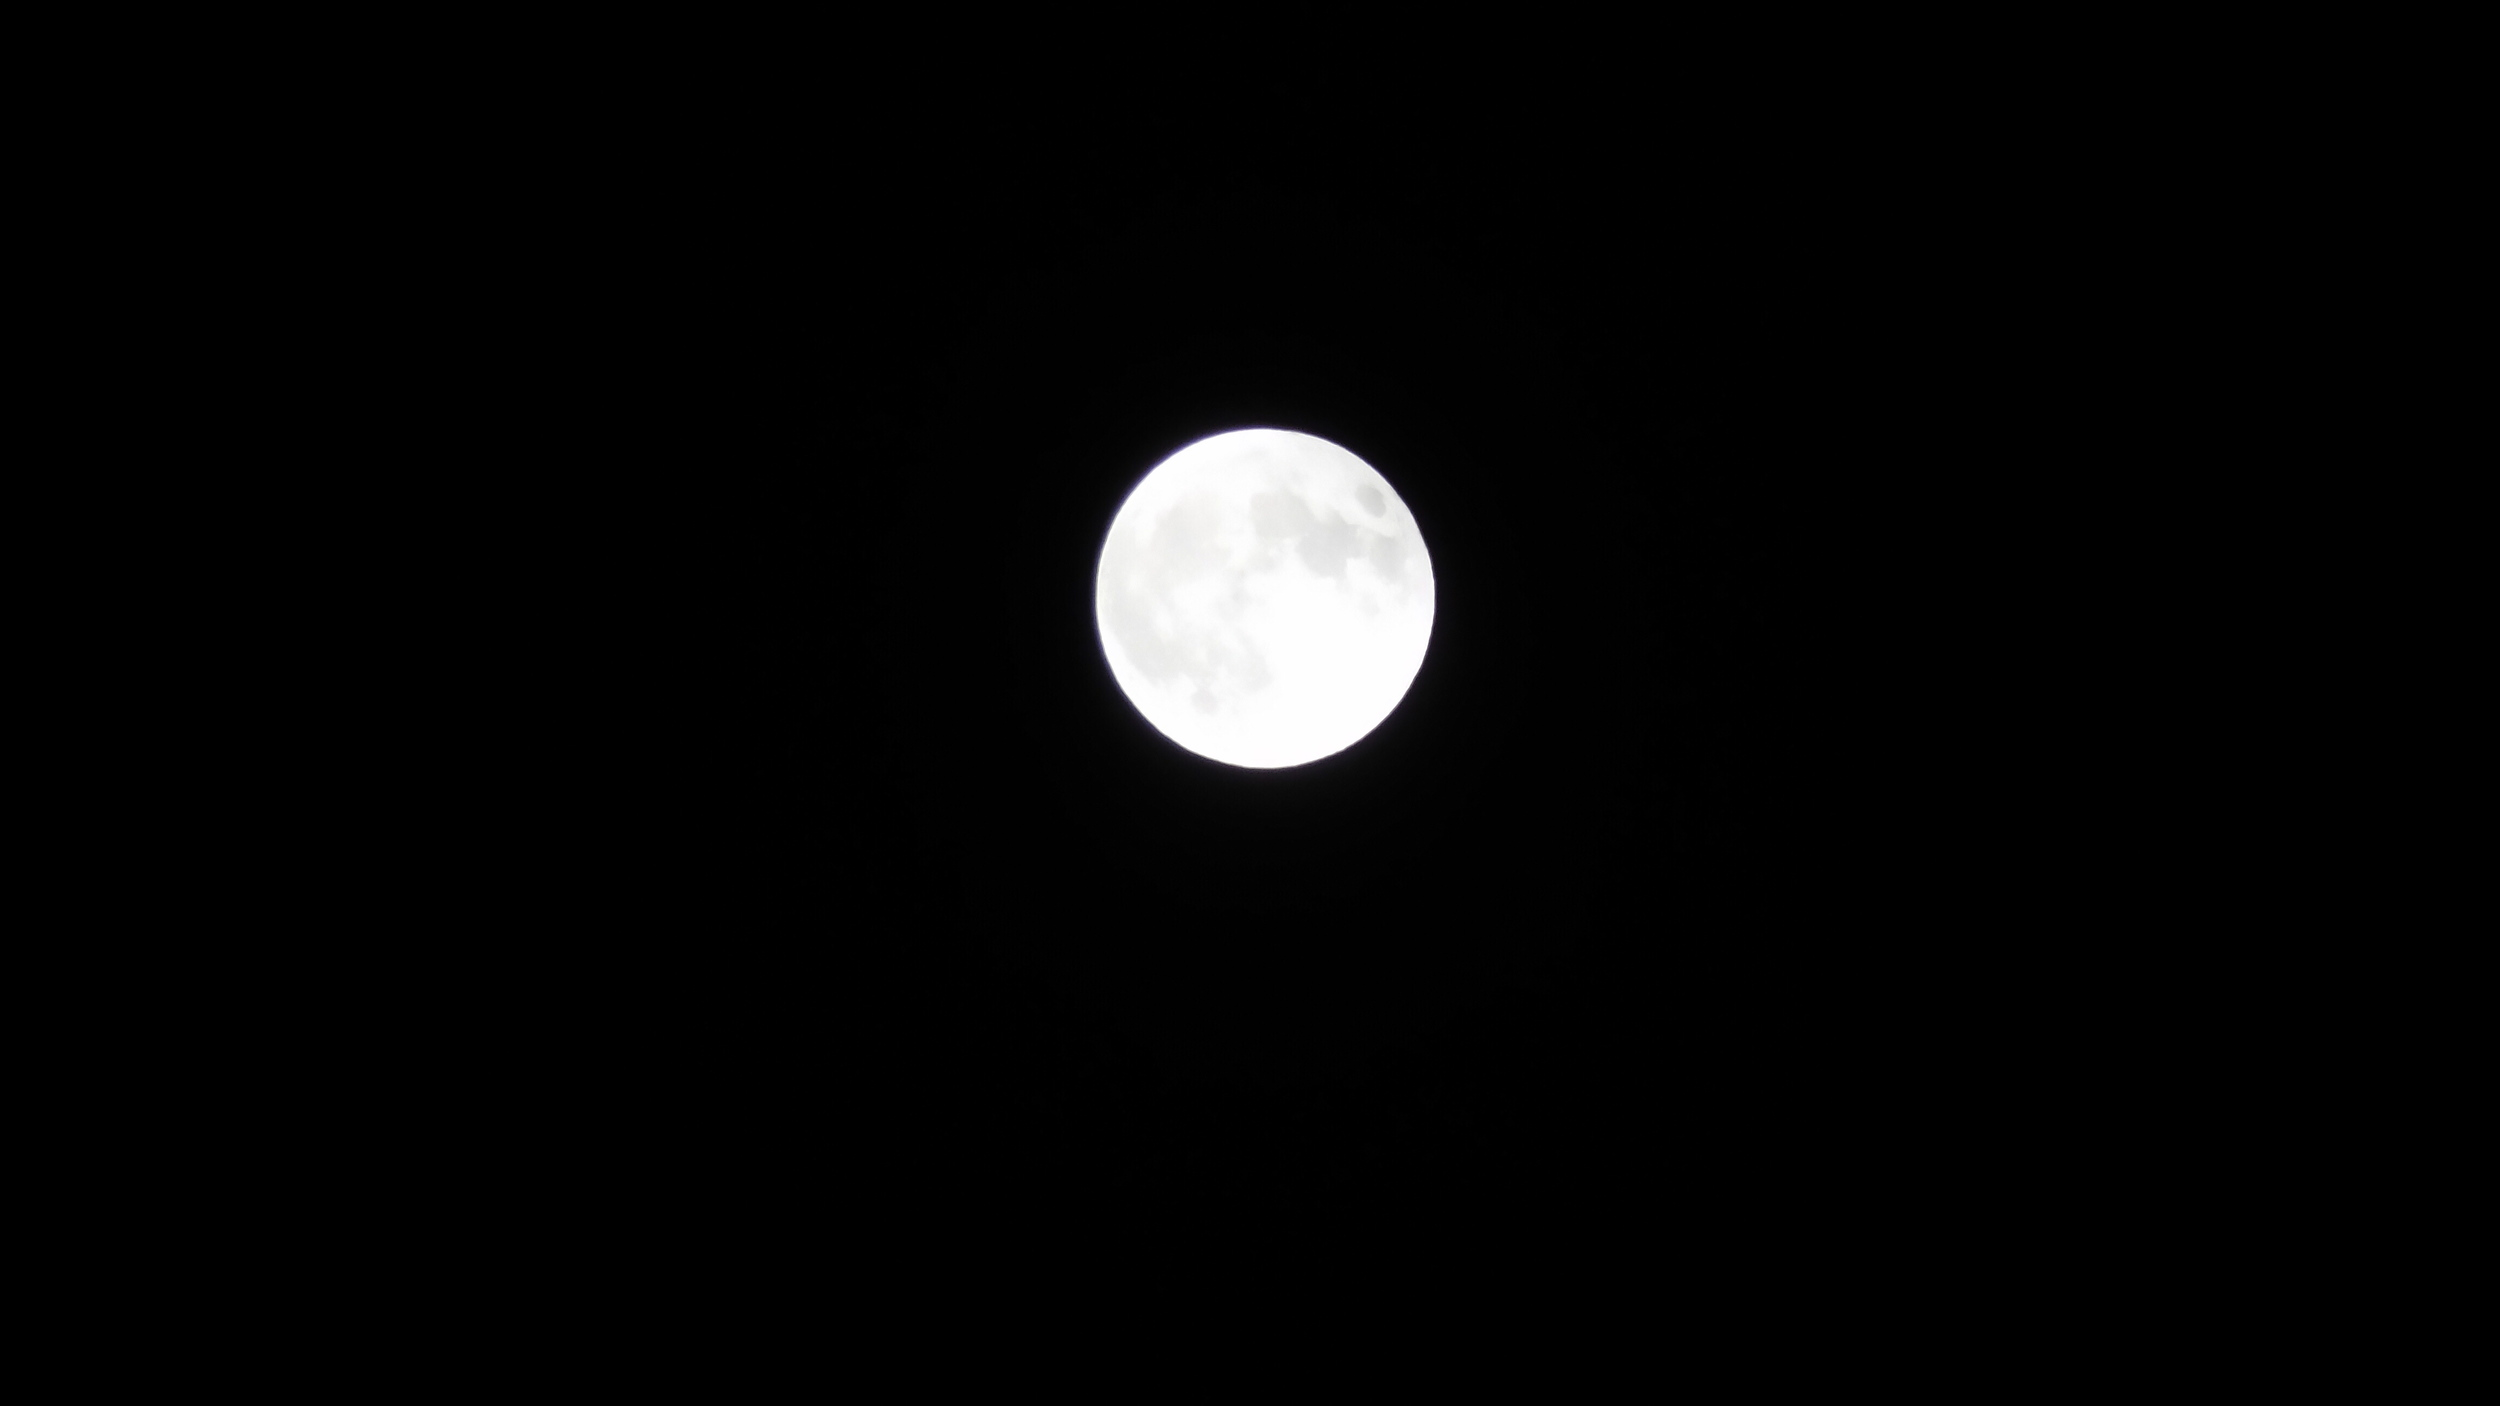 5 full moon after eclipse.jpg